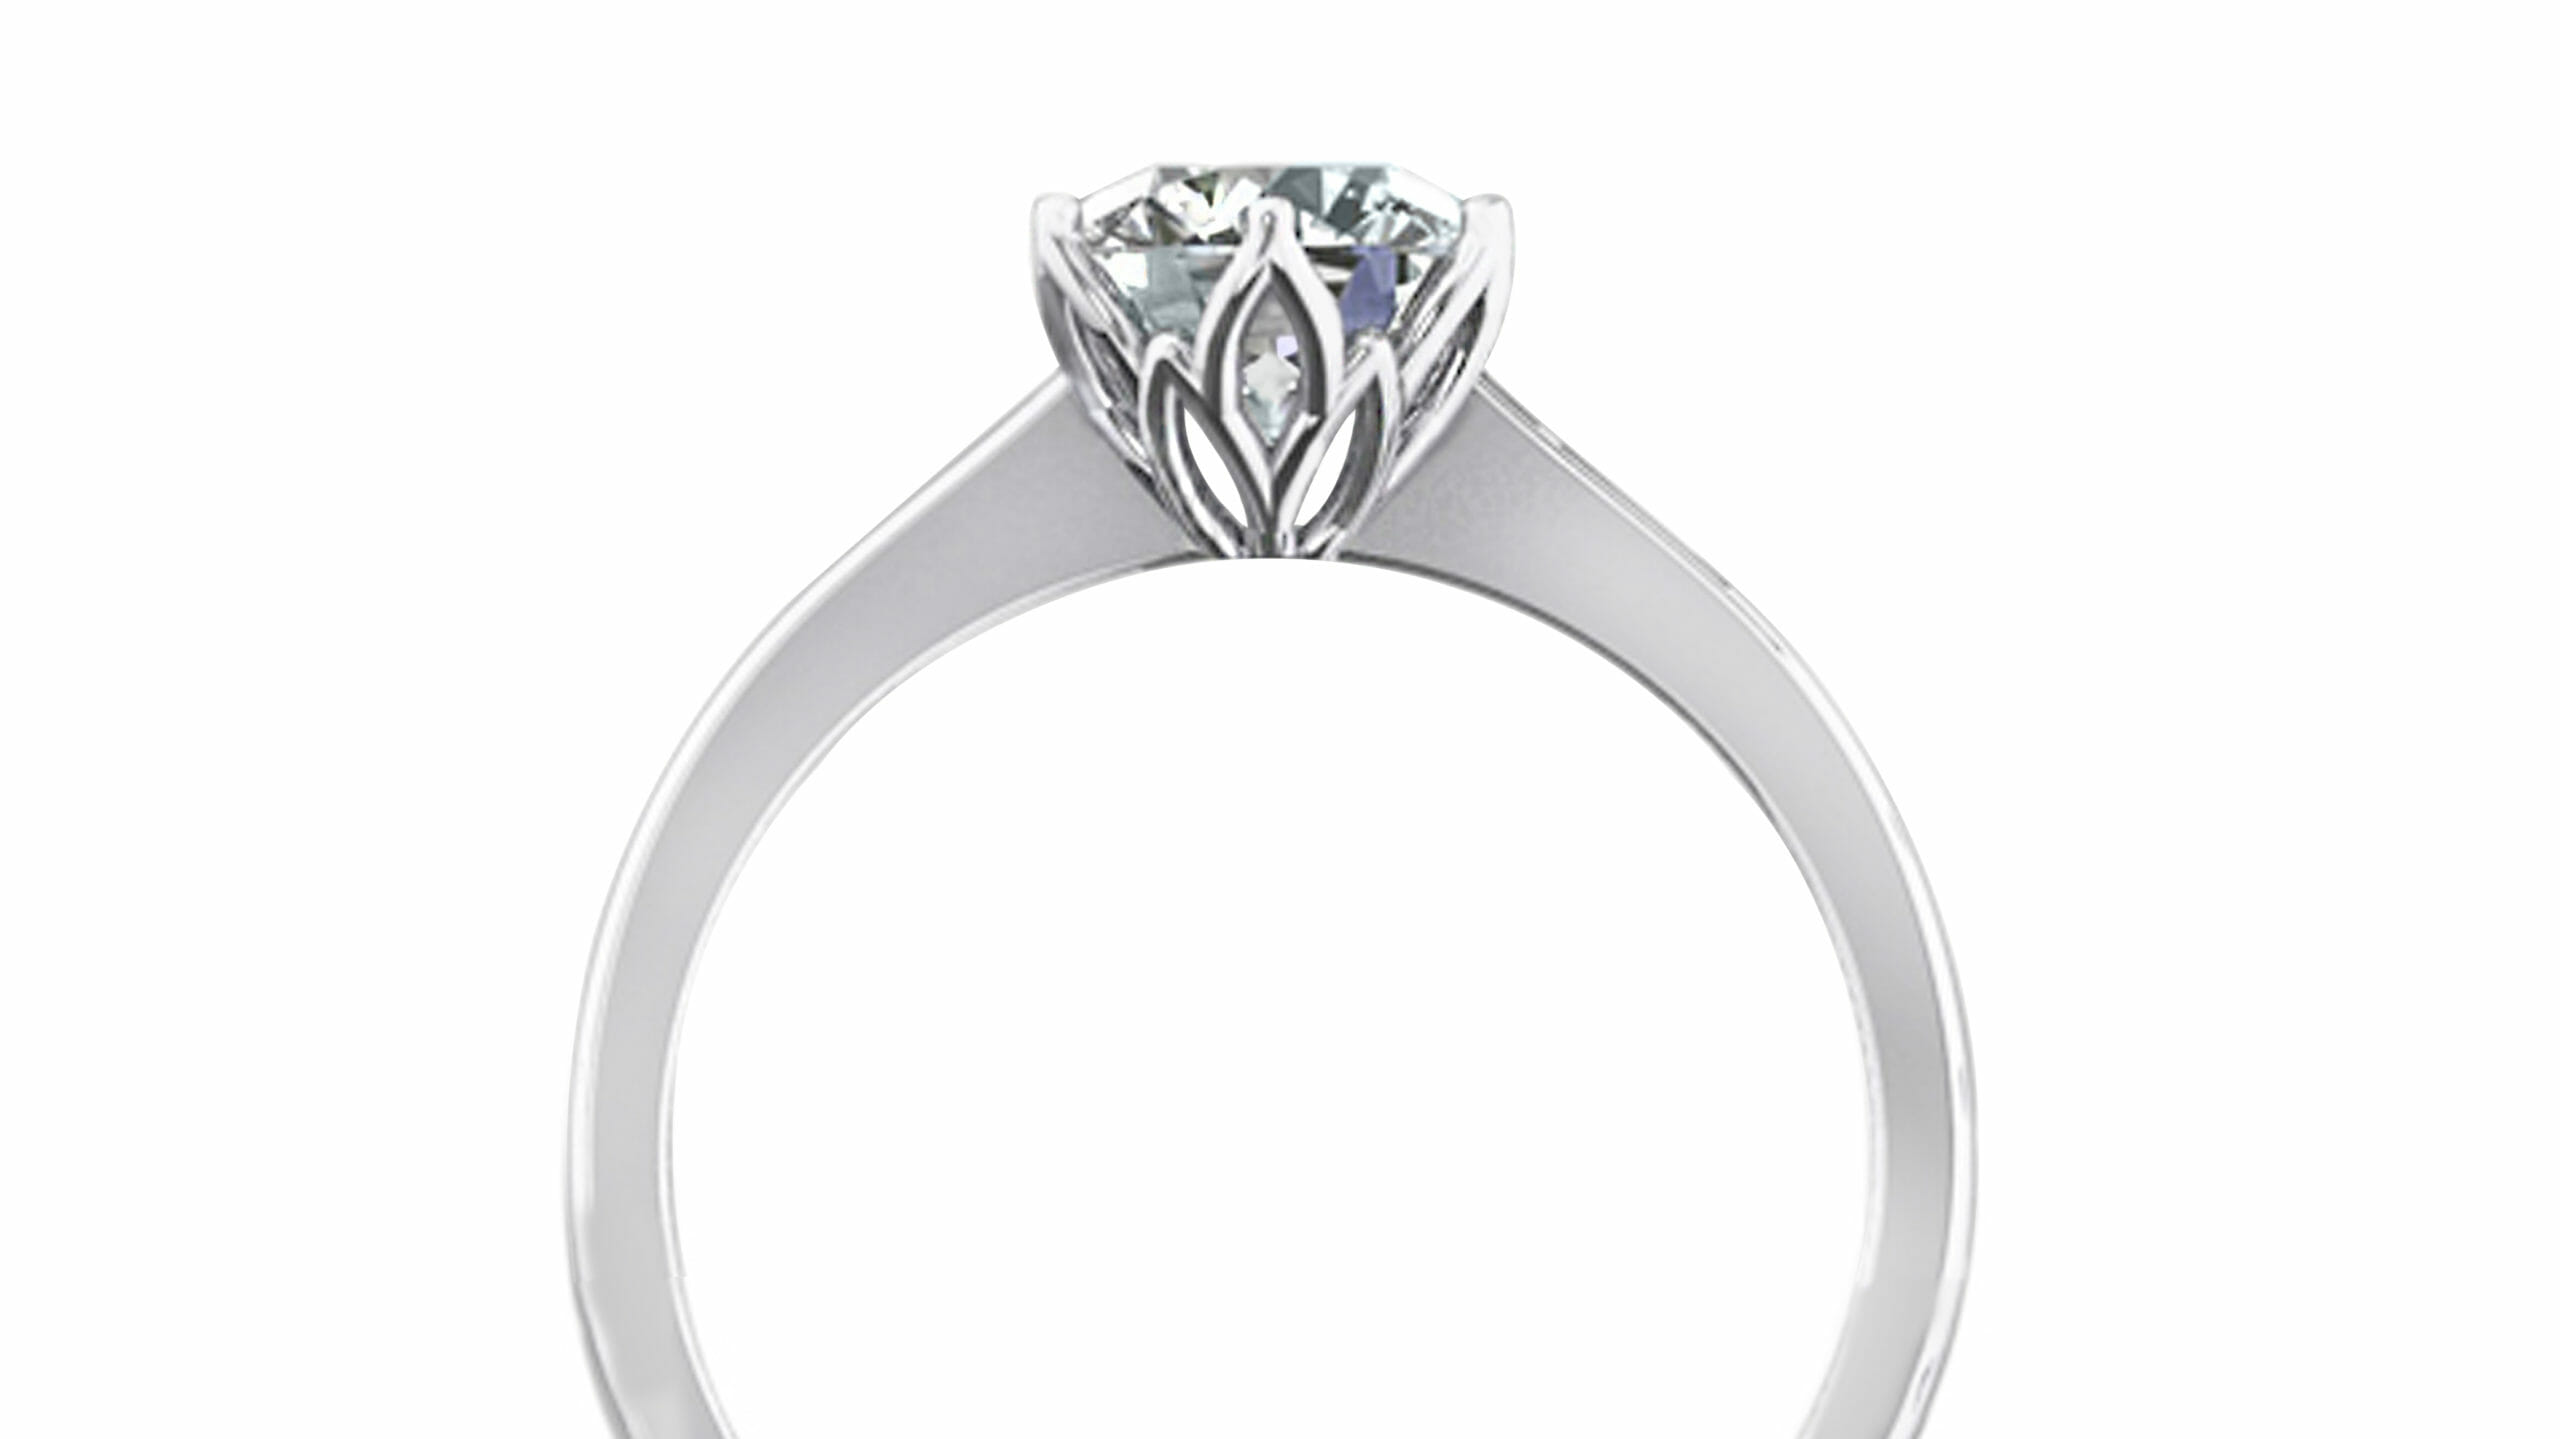 diamond engagement ring | Petal solitaire engagement ring set in white gold